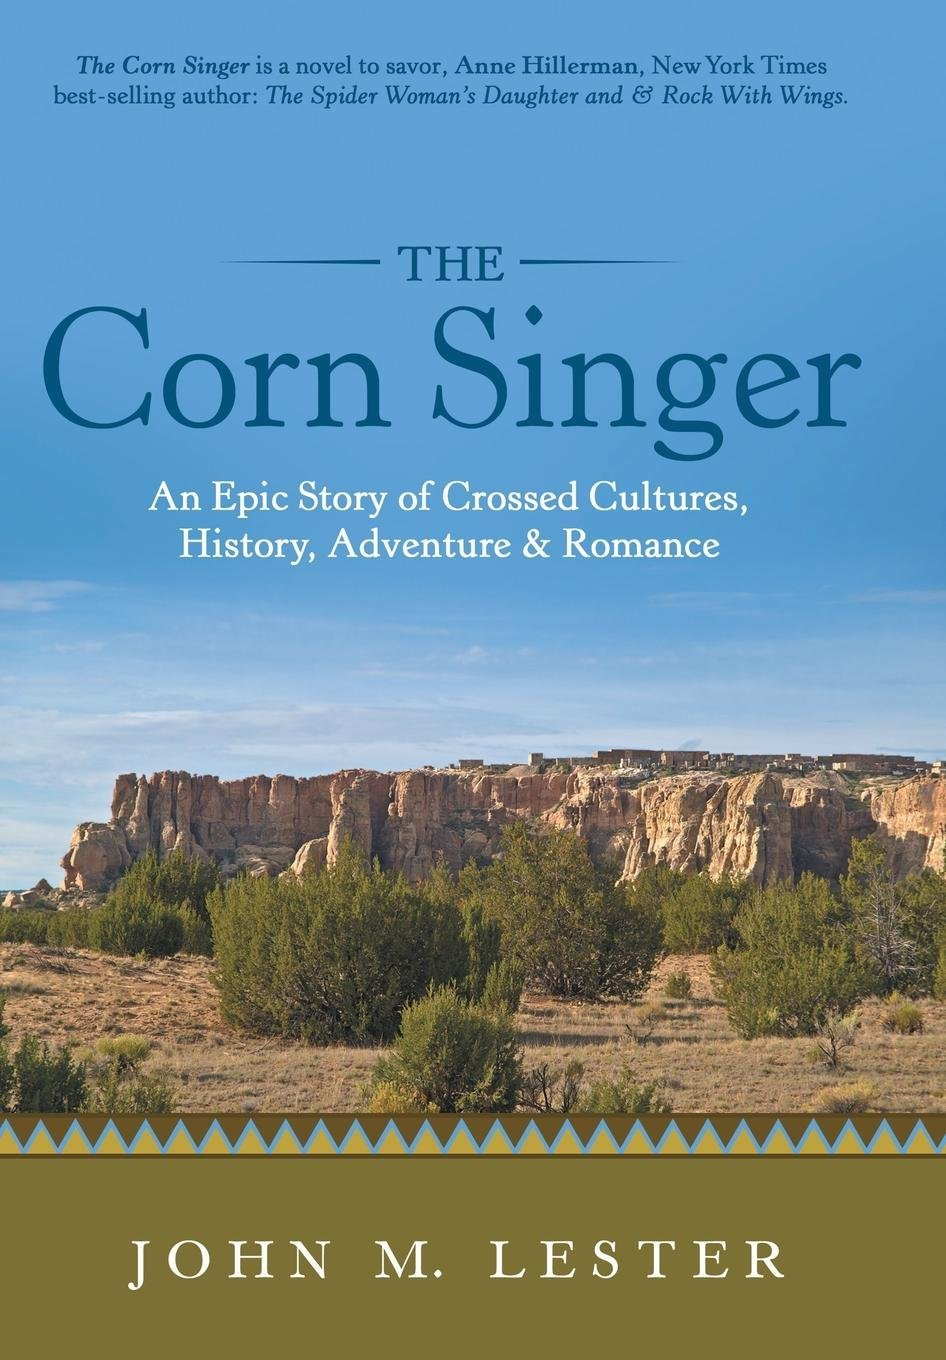 Amazon.com: The Corn Singer: An Epic Story of Crossed Cultures, History,  Adventure & Romance (9781489711533): John M Lester: Books